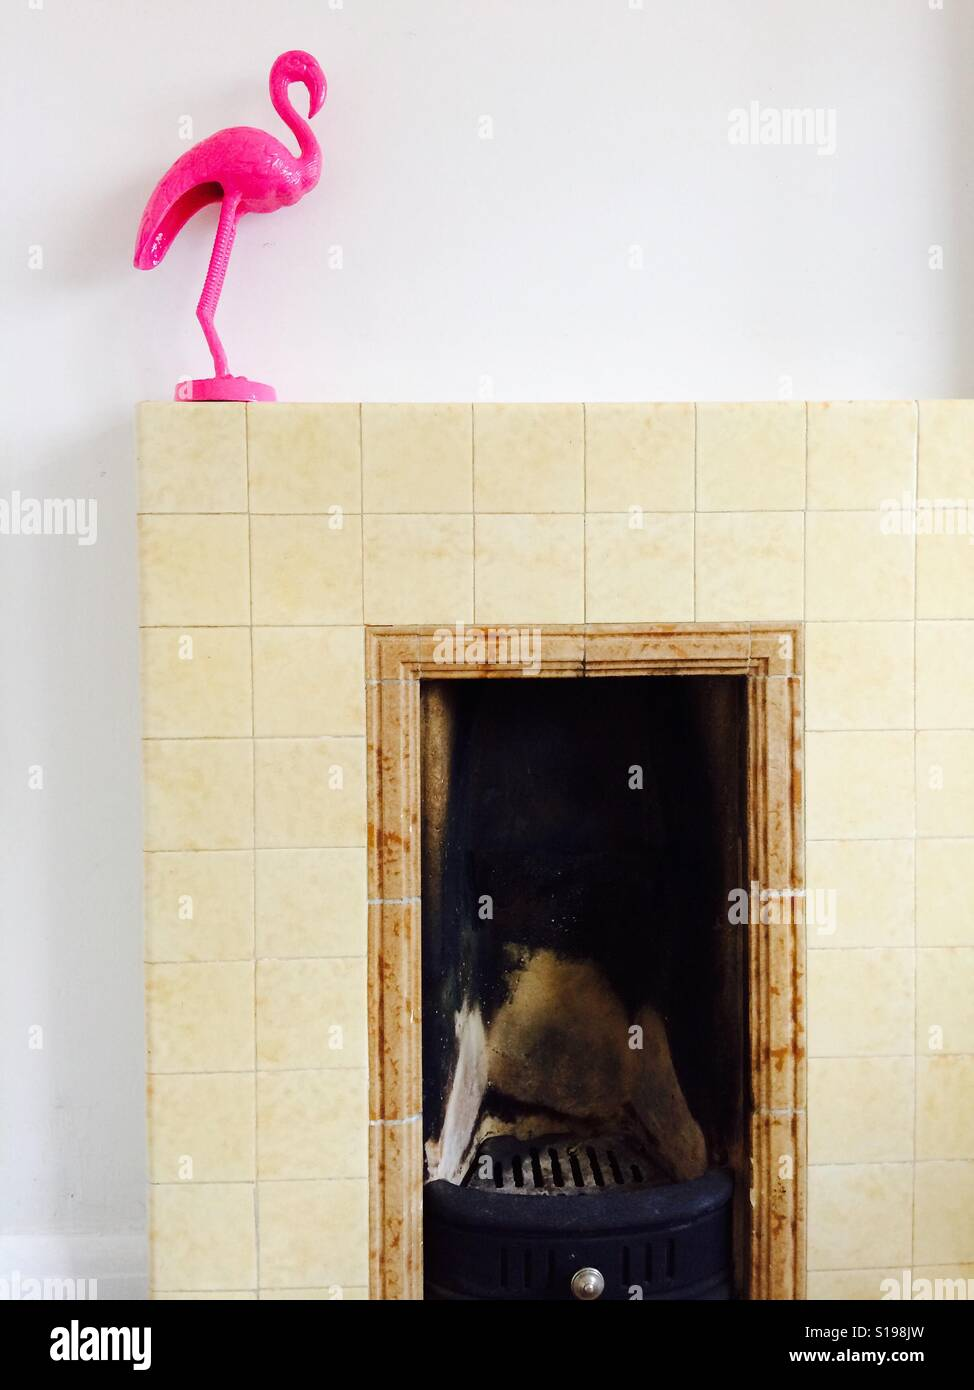 Pink flamingo ornament on a vintage 1940s tiled fireplace - Stock Image